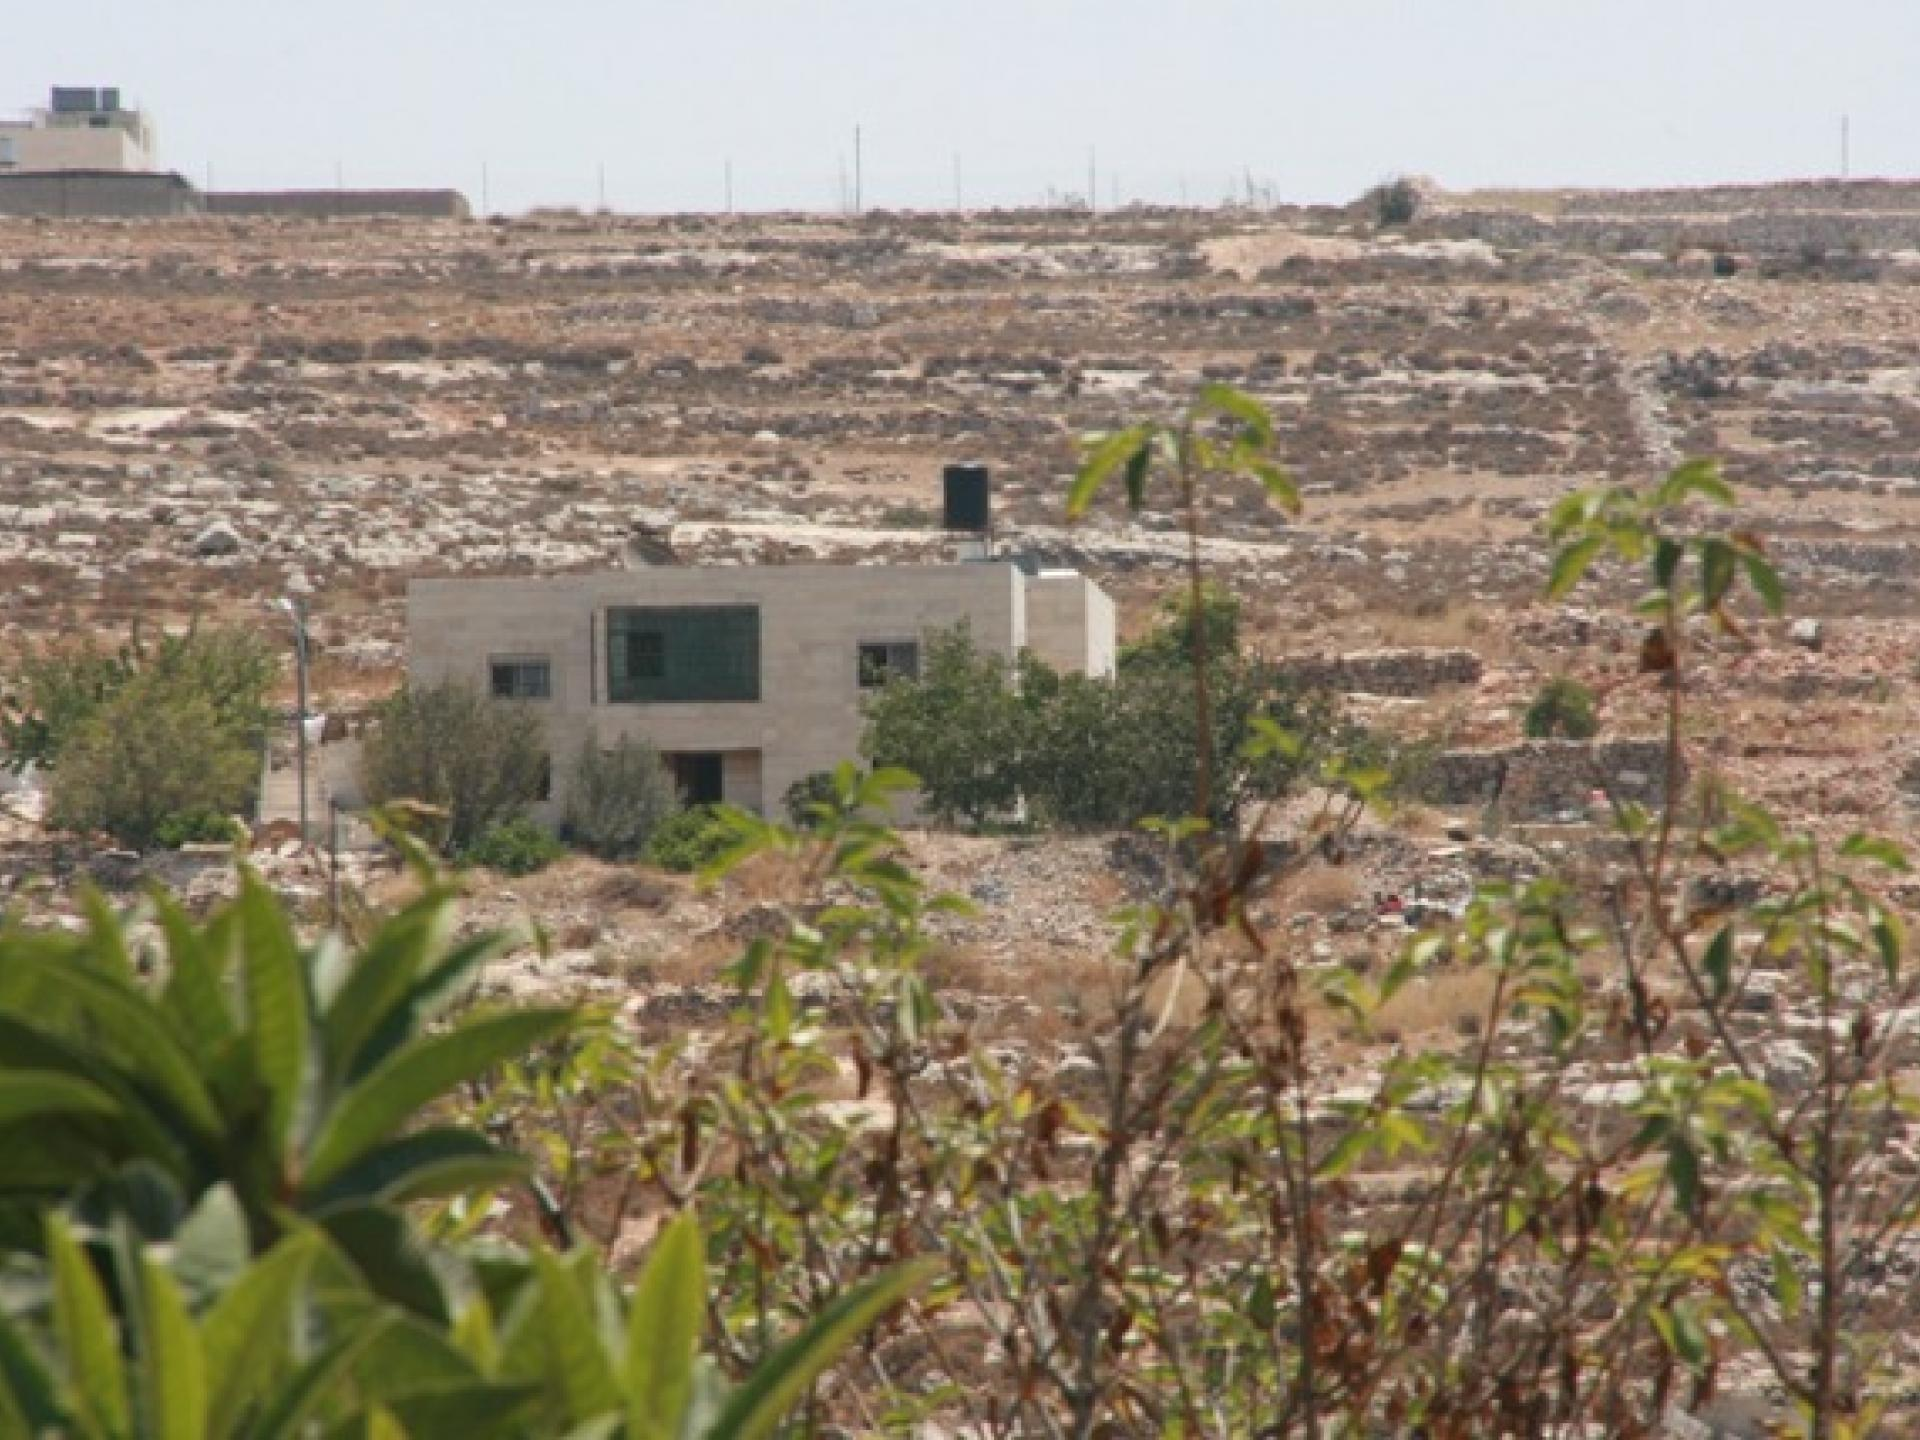 Ata Jaber's house is exposed with everything dry and destroyed